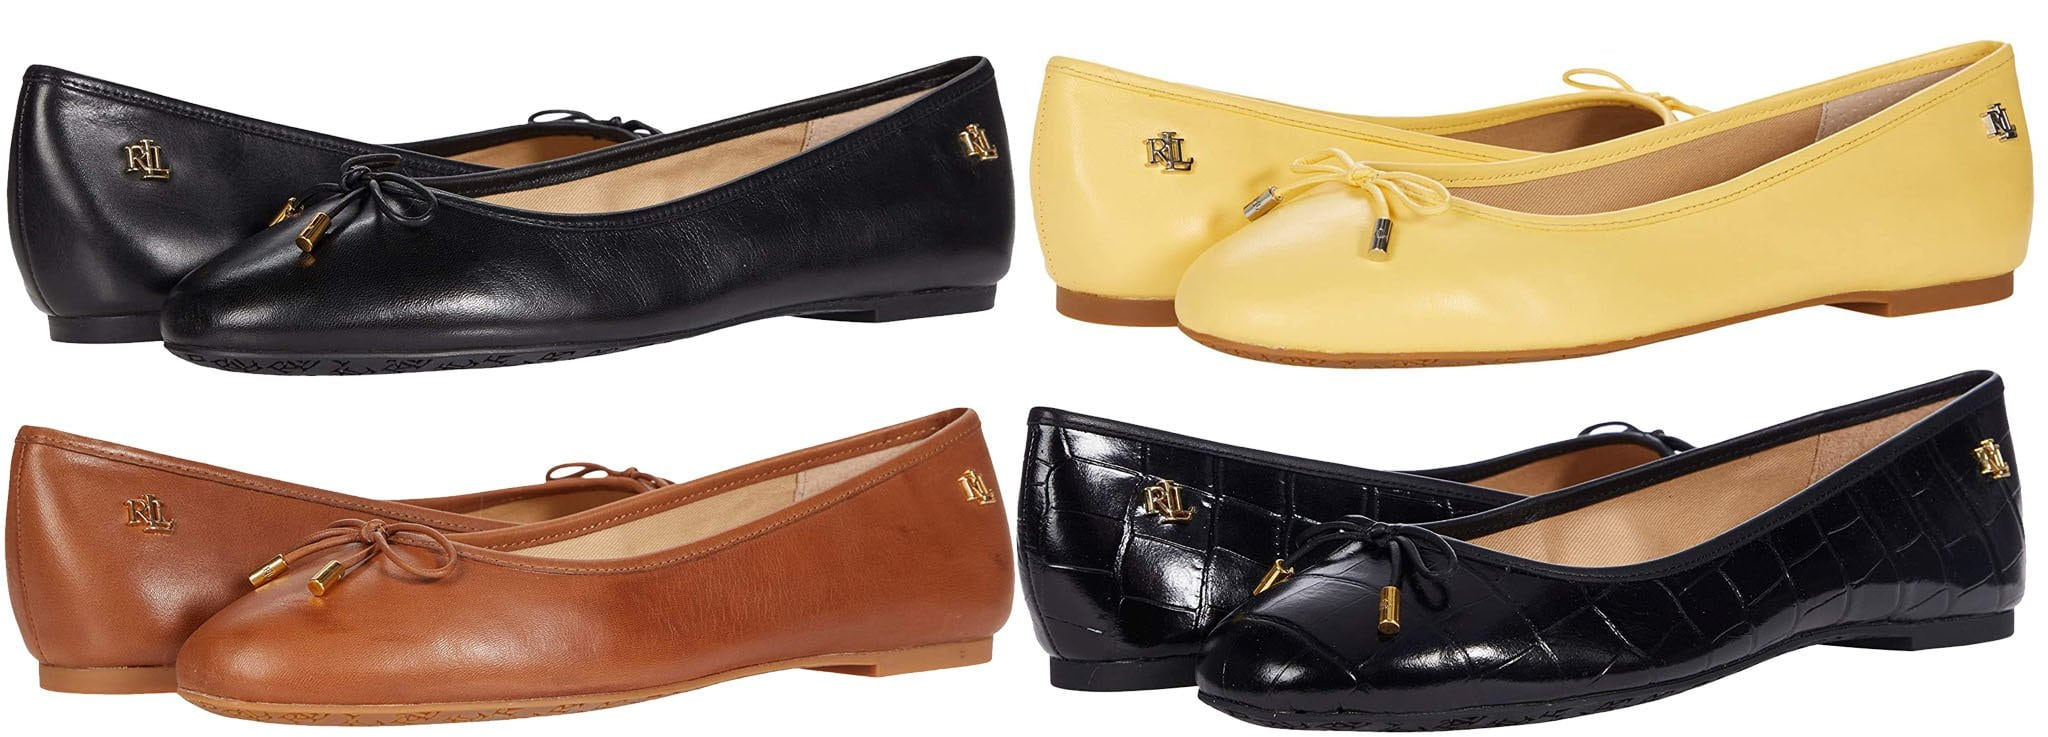 Featuring a delicate bow detail, the Jayna leather flats are guaranteed to give any outfit a touch of feminine glamour